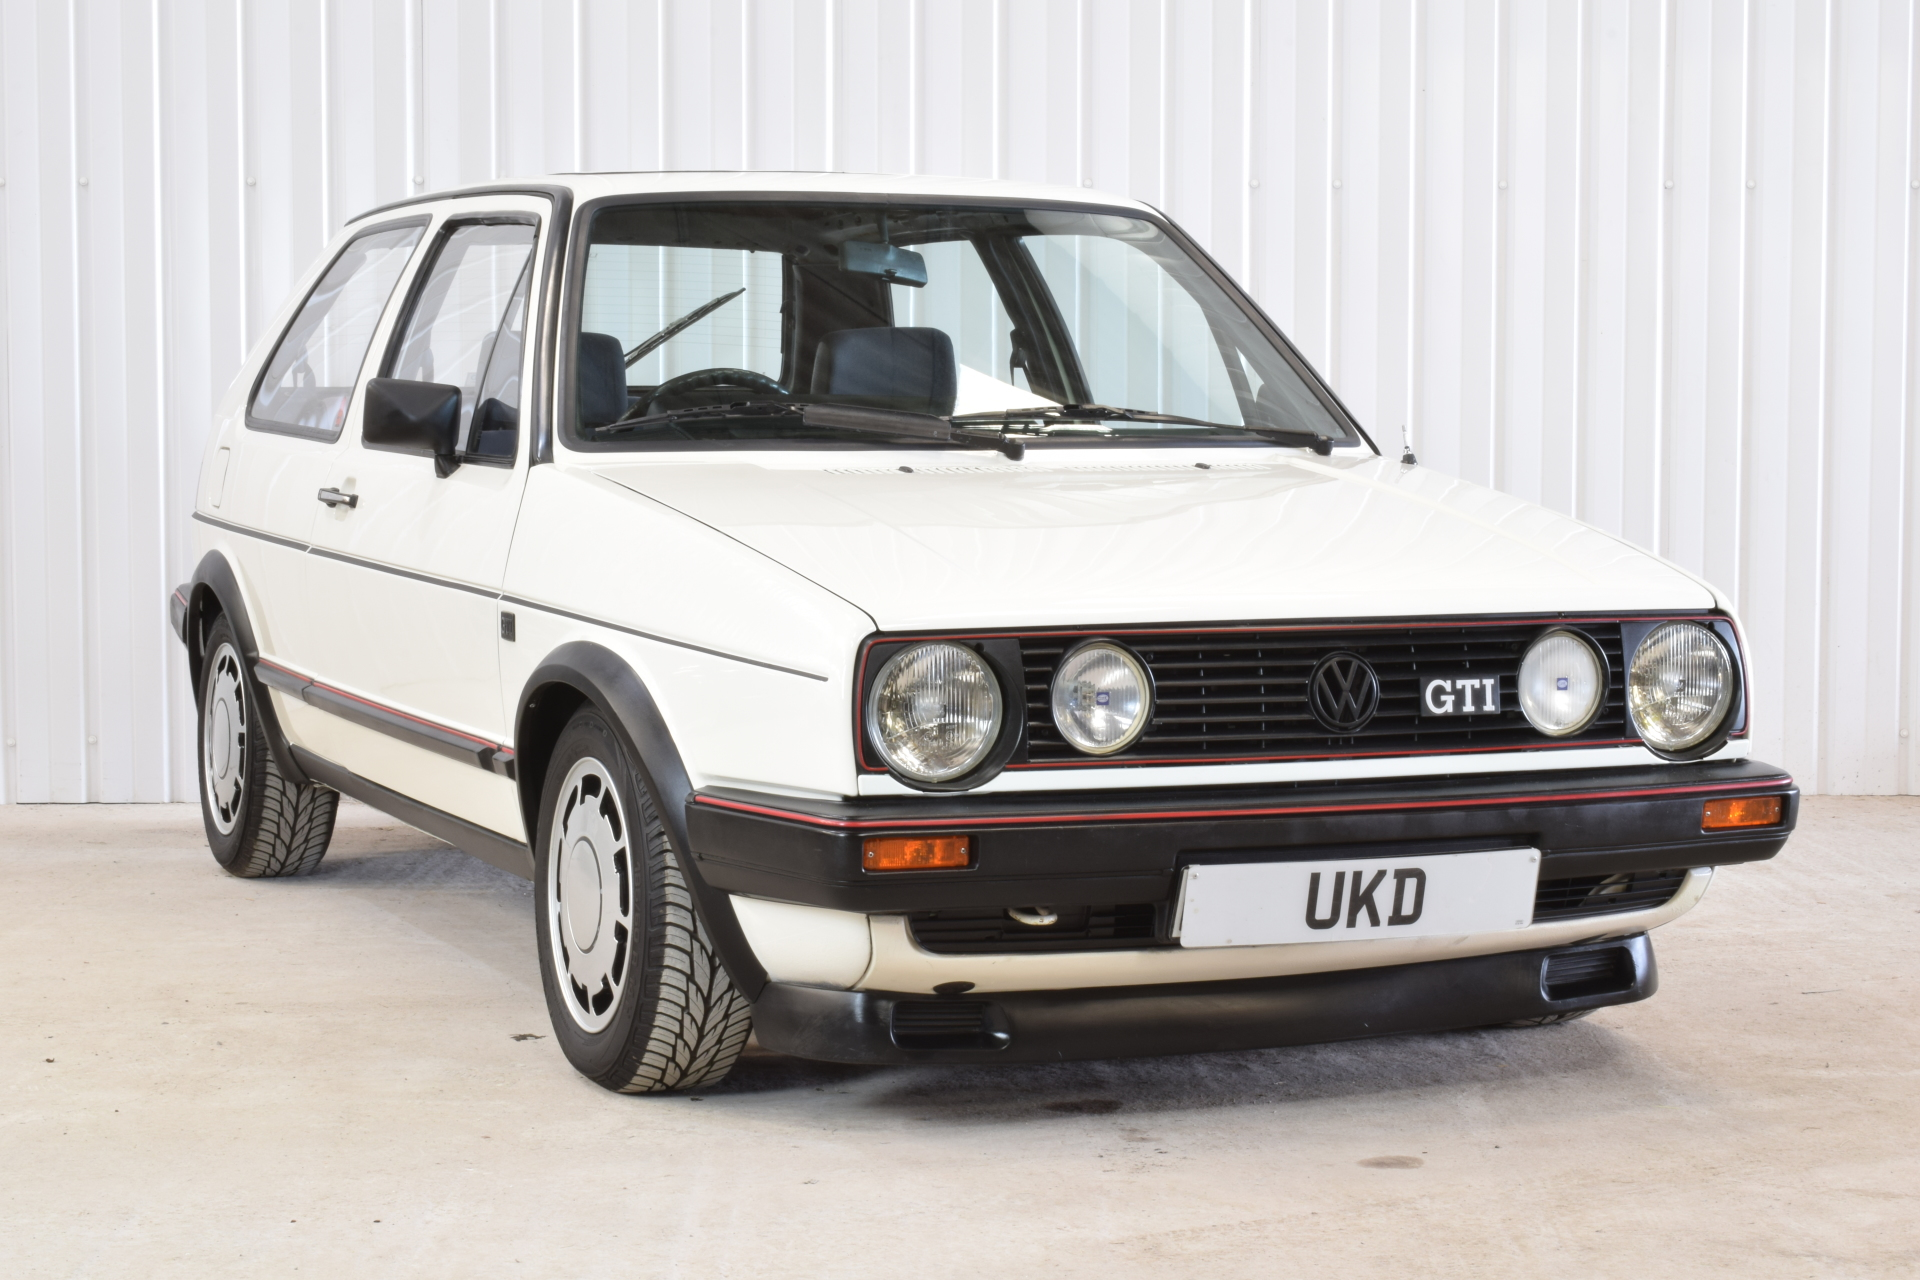 VW GOLF MK2 GTI 3DR 1984 WHITE